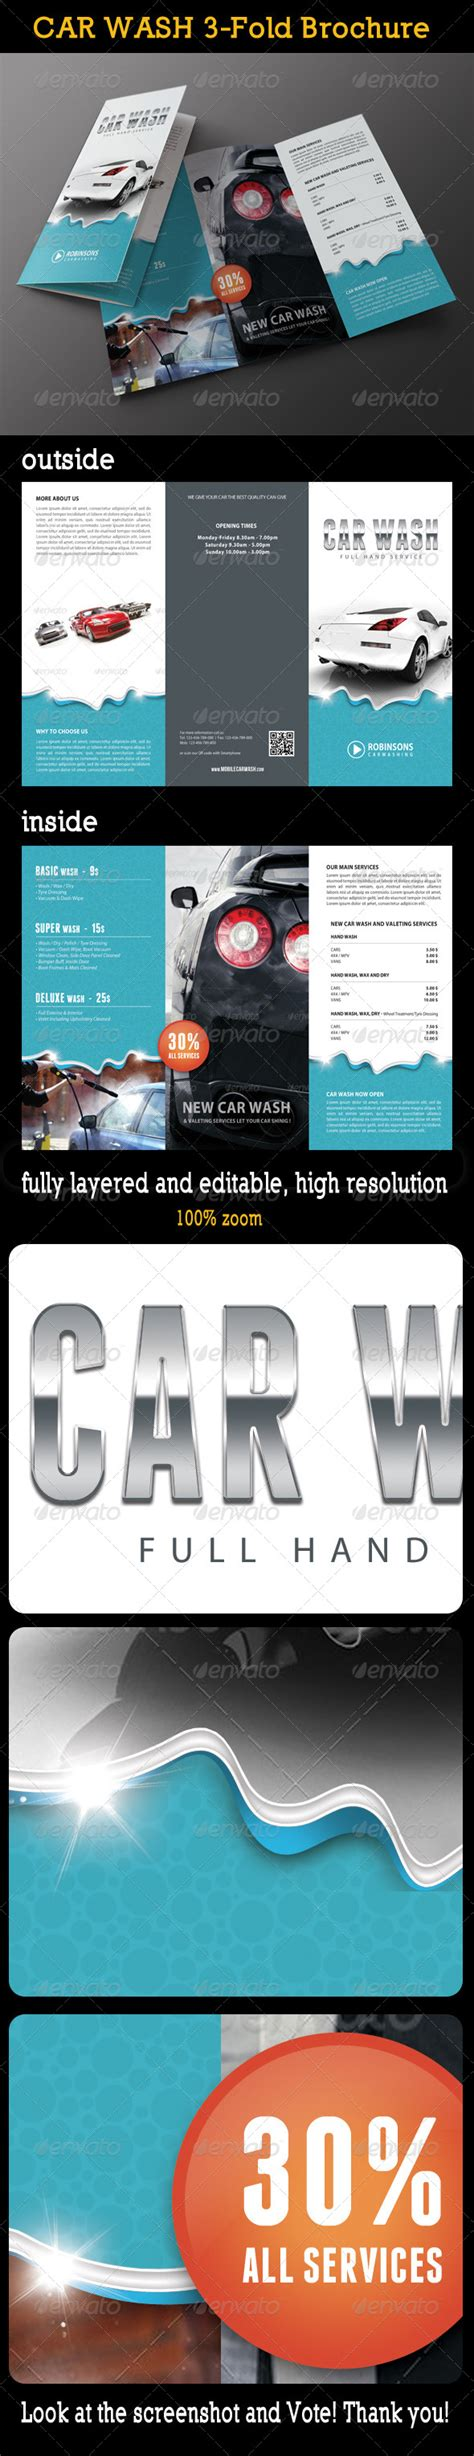 Car Wash 3 Fold Brochure 02 By Rapidgraf Graphicriver Franchise Brochure Templates